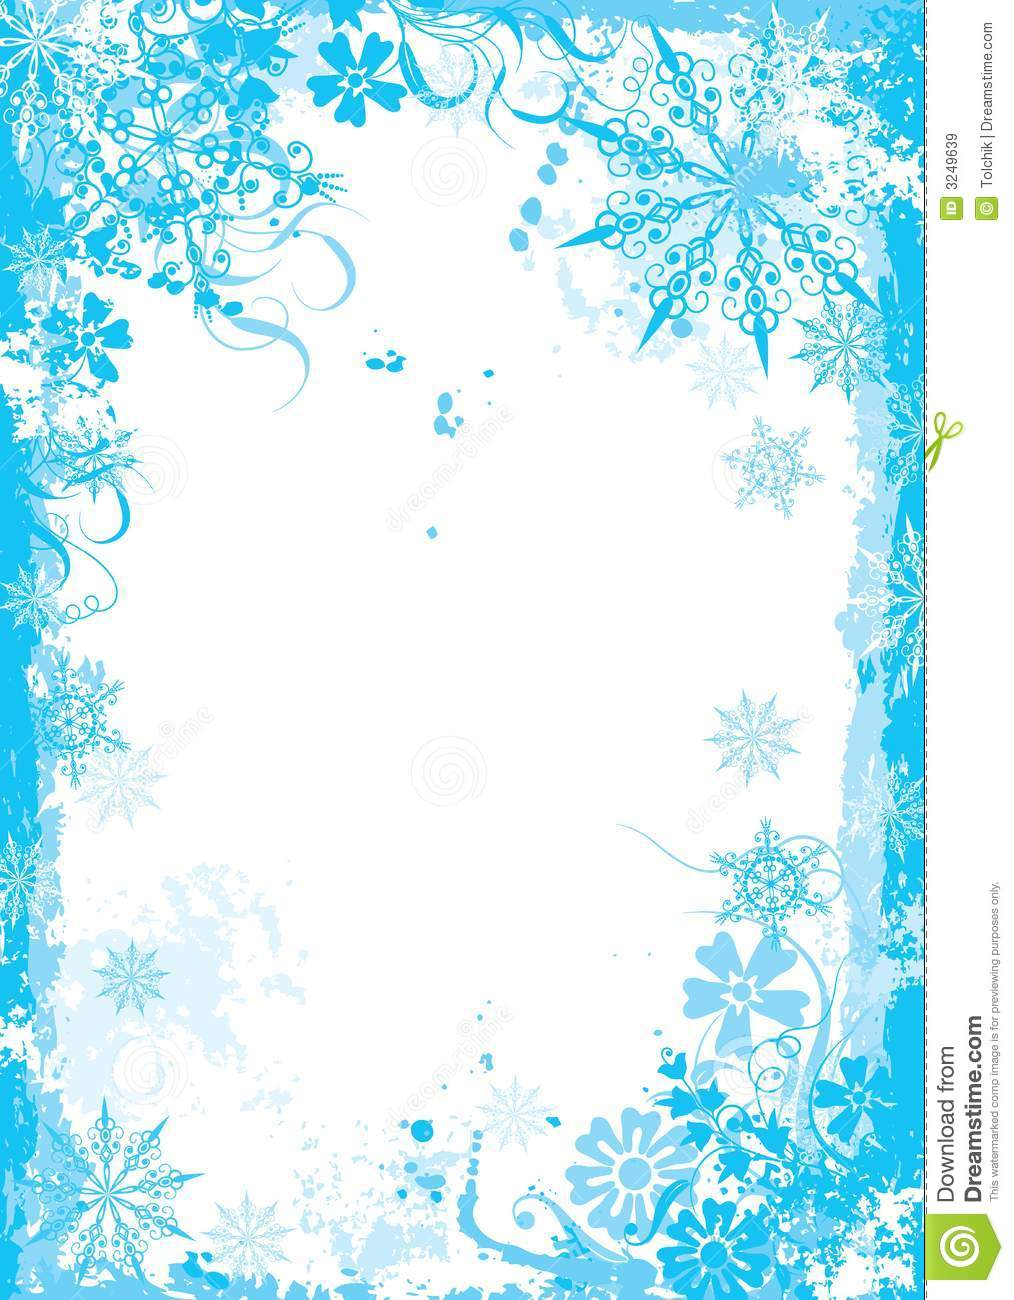 Winter Floral Frame, Vector Stock Vector - Illustration of ...